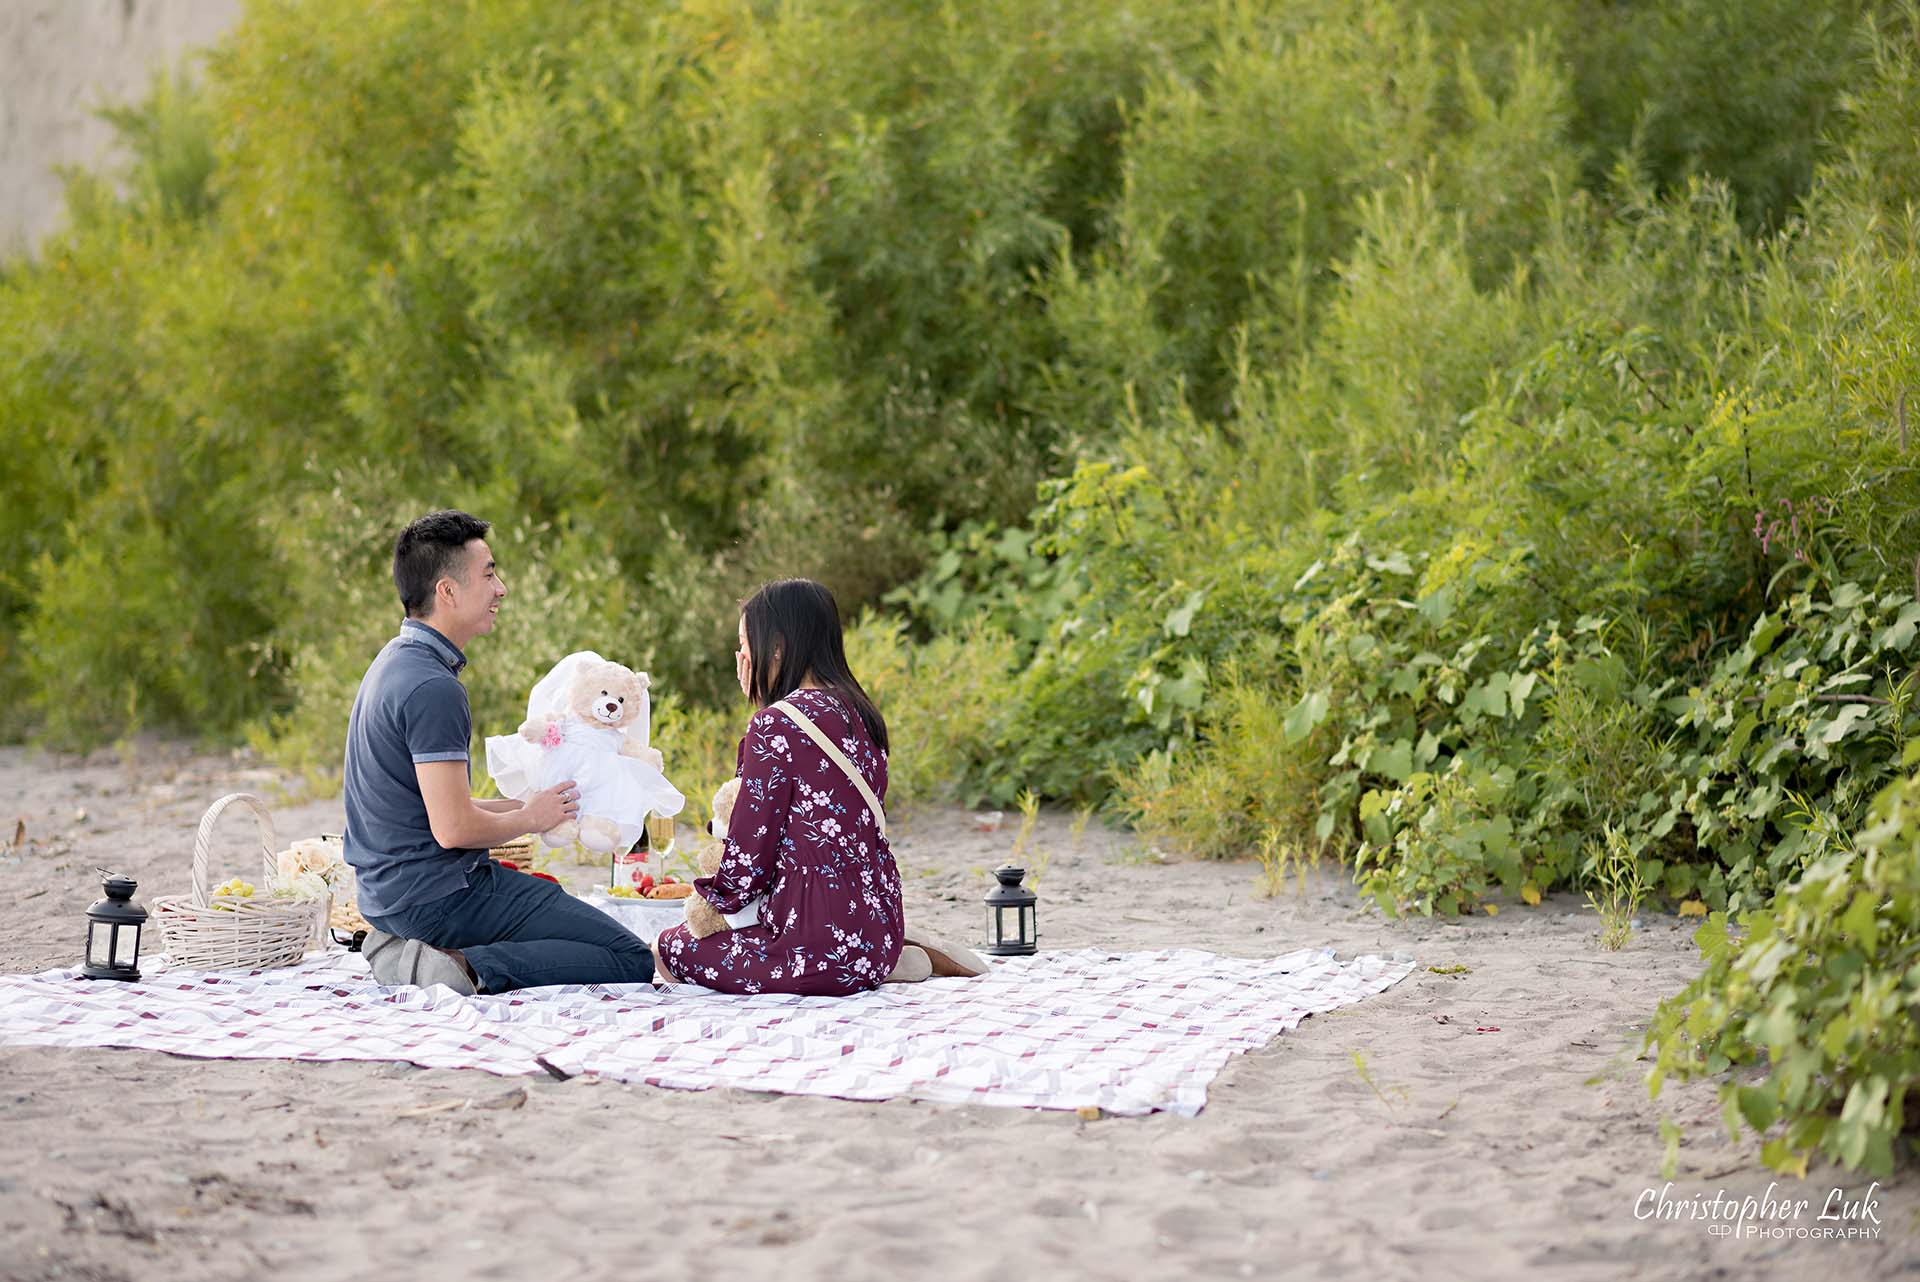 Christopher Luk Toronto Photographer Scarborough Bluffs Beach Park Sunset Surprise Wedding Marriage Engagement Proposal Candid Natural Photojournalistic Bride Groom Picnic Blanket Basket Stuffed Animal Teddy Bear